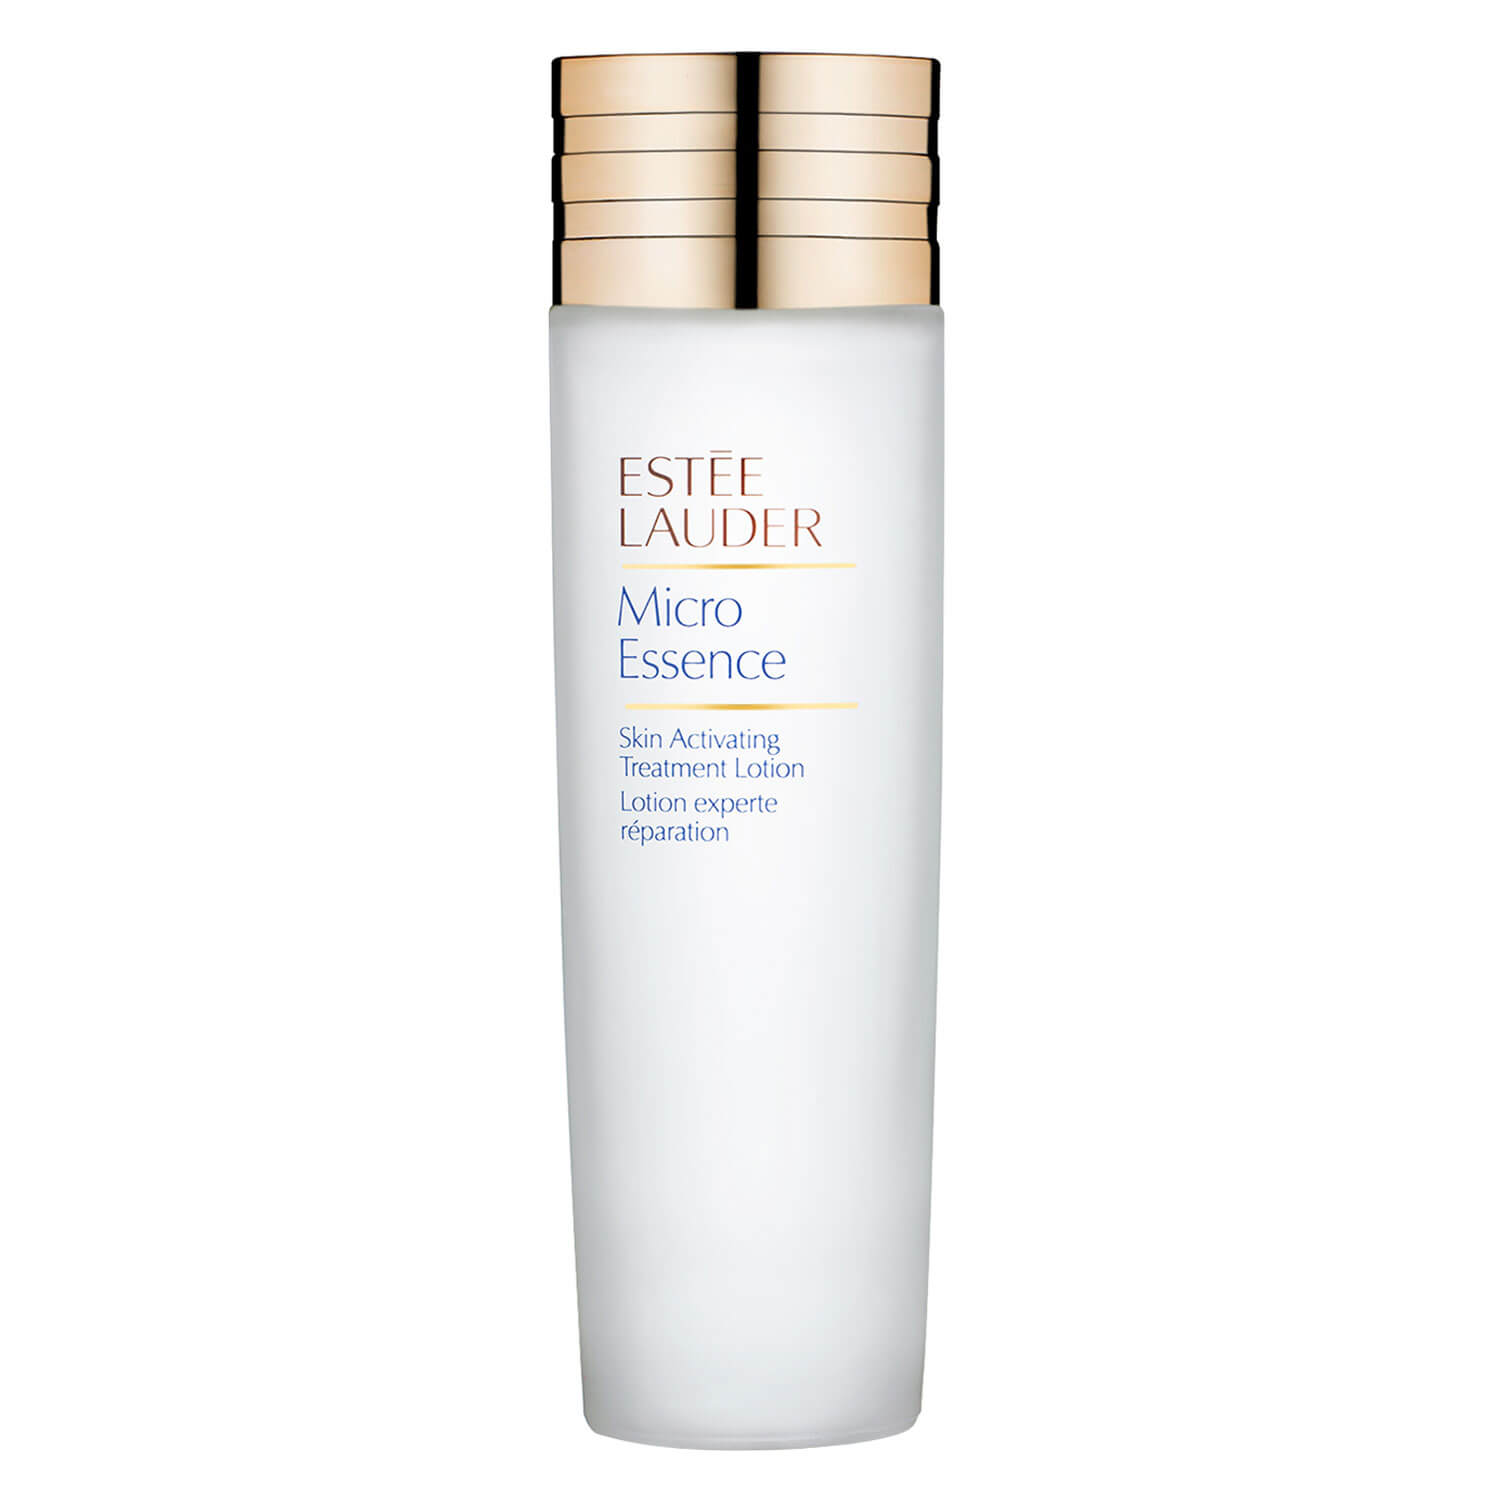 Micro Essence - Skin Activating Treatment Lotion